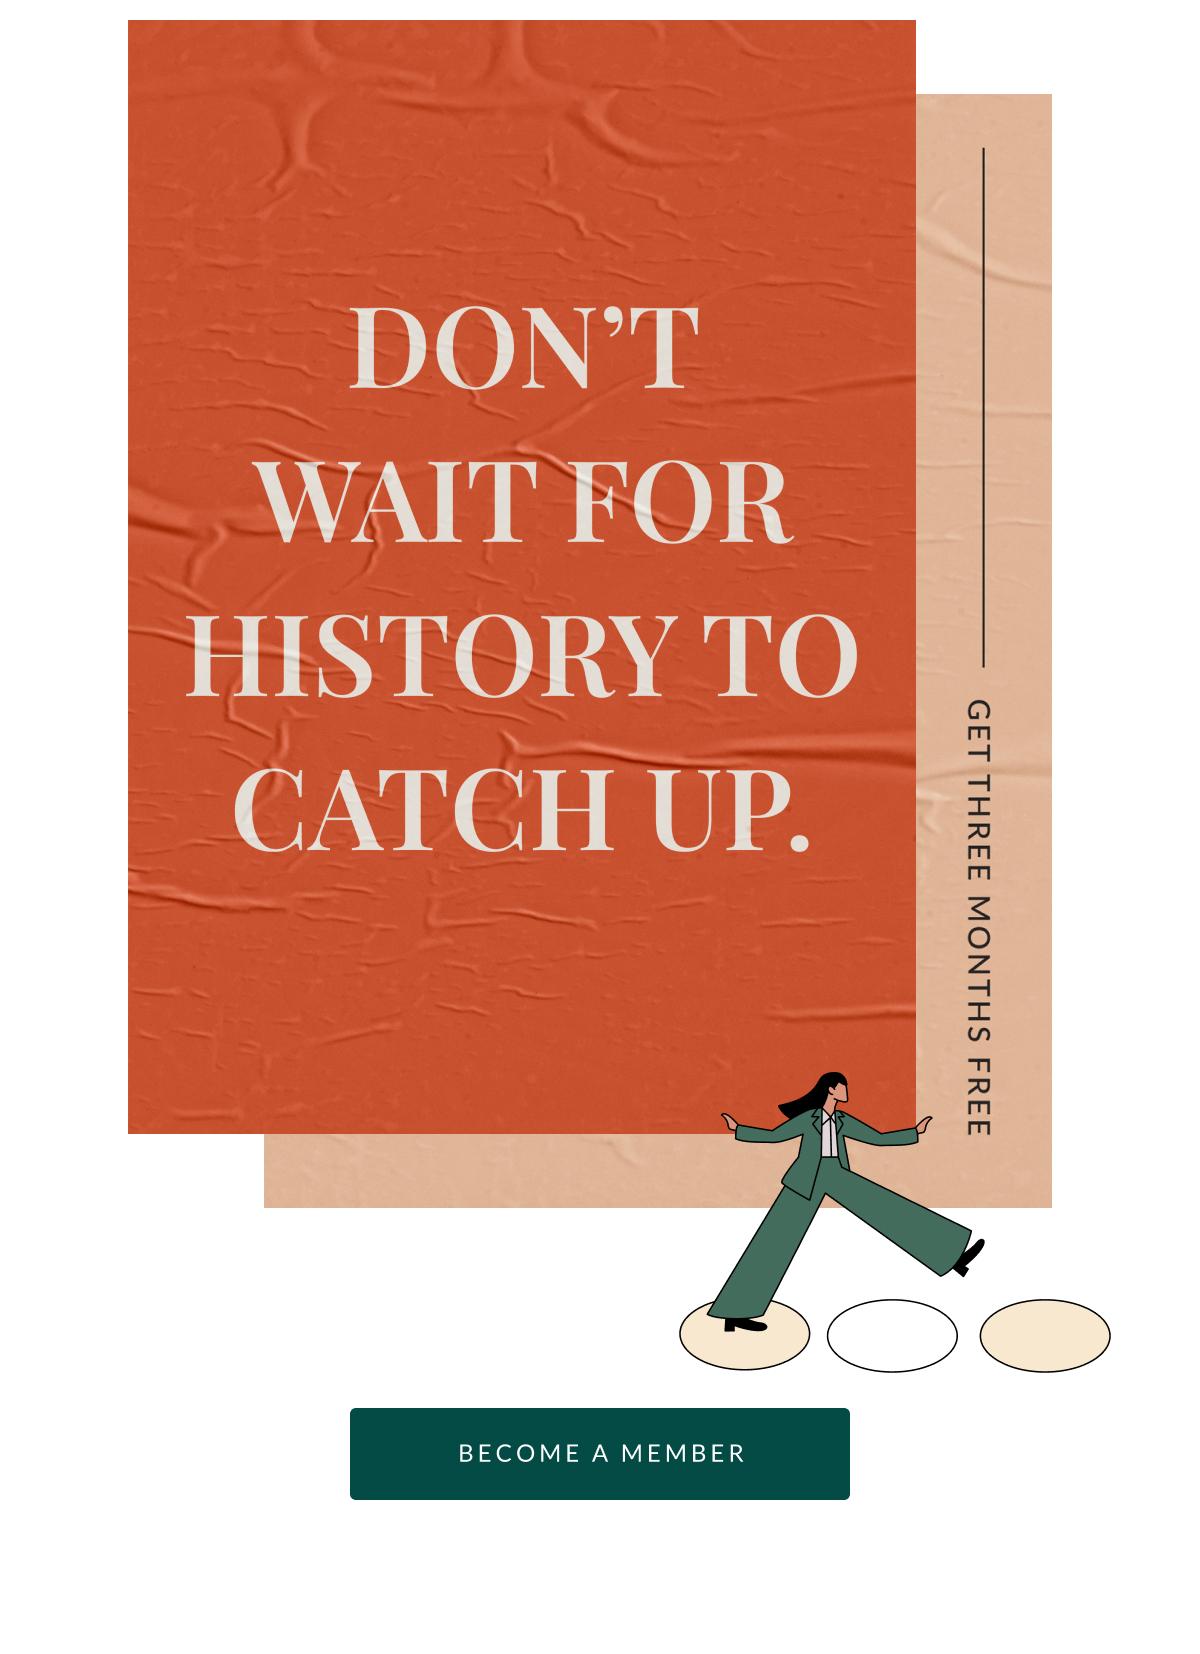 """Image text reads """"Don't wait for history to catch up."""""""